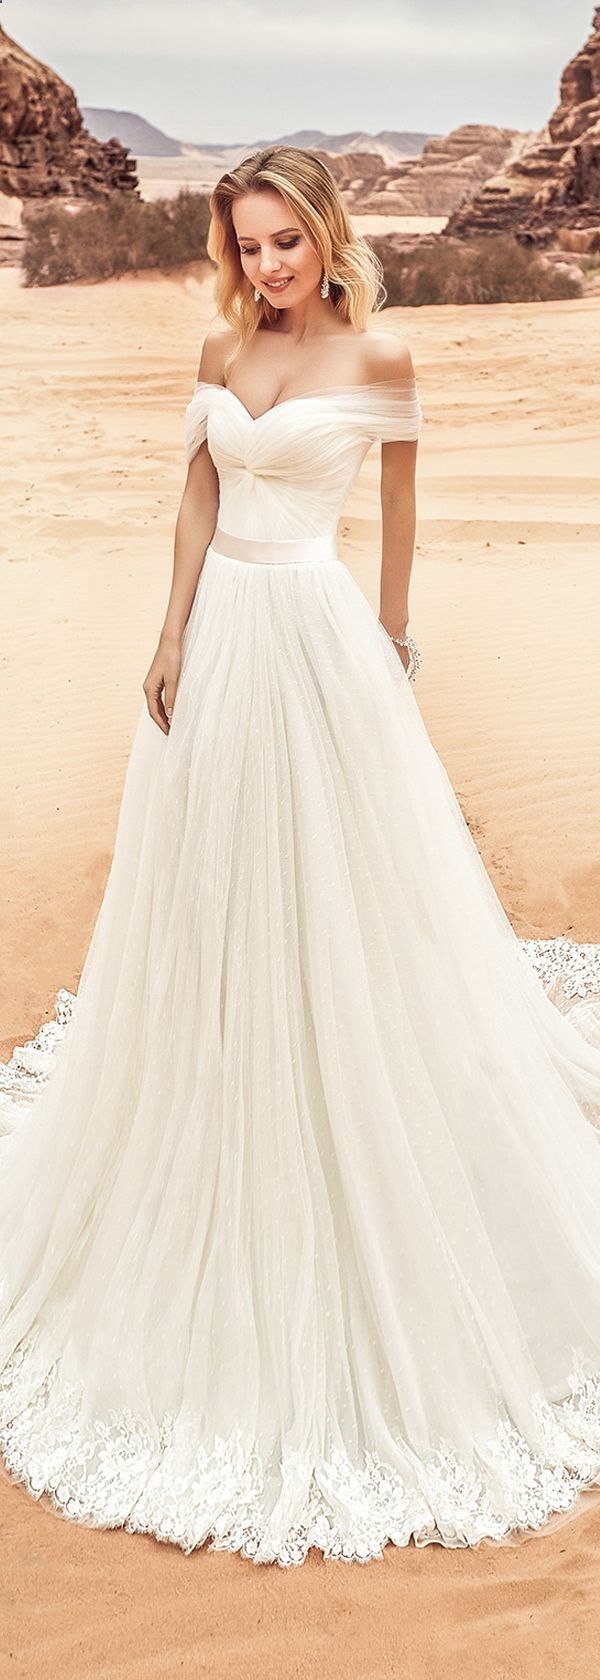 19+ Best wedding images in 19  wedding dresses, wedding